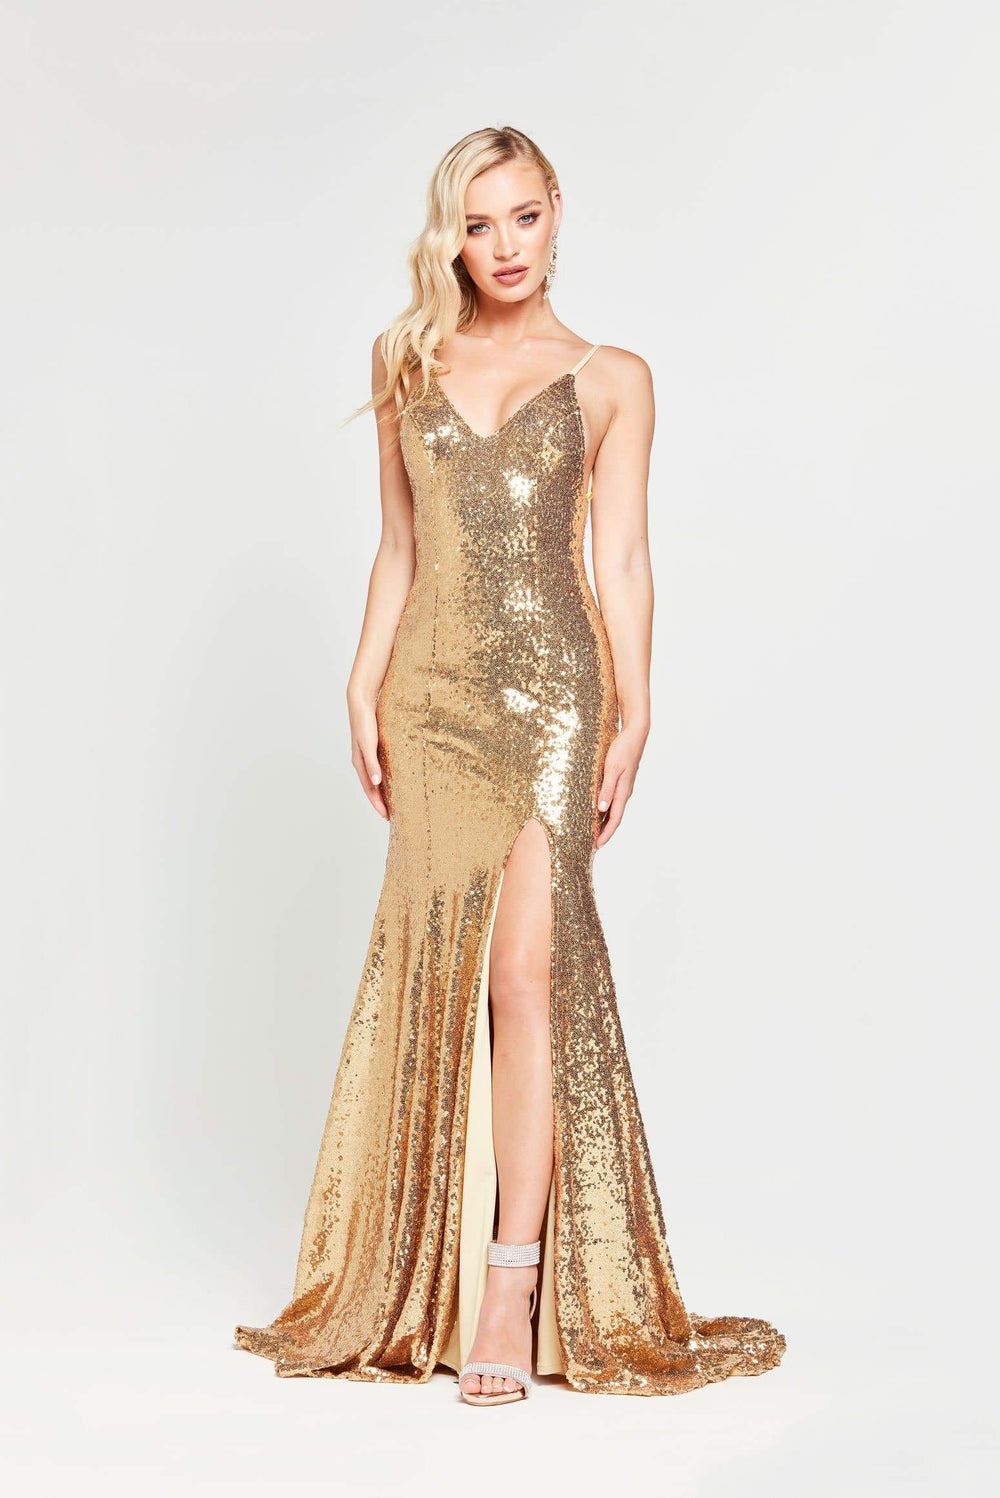 53084b5128c A N Kara - Gold Sequinned Mermaid Gown with Slit and Lace up Back ...